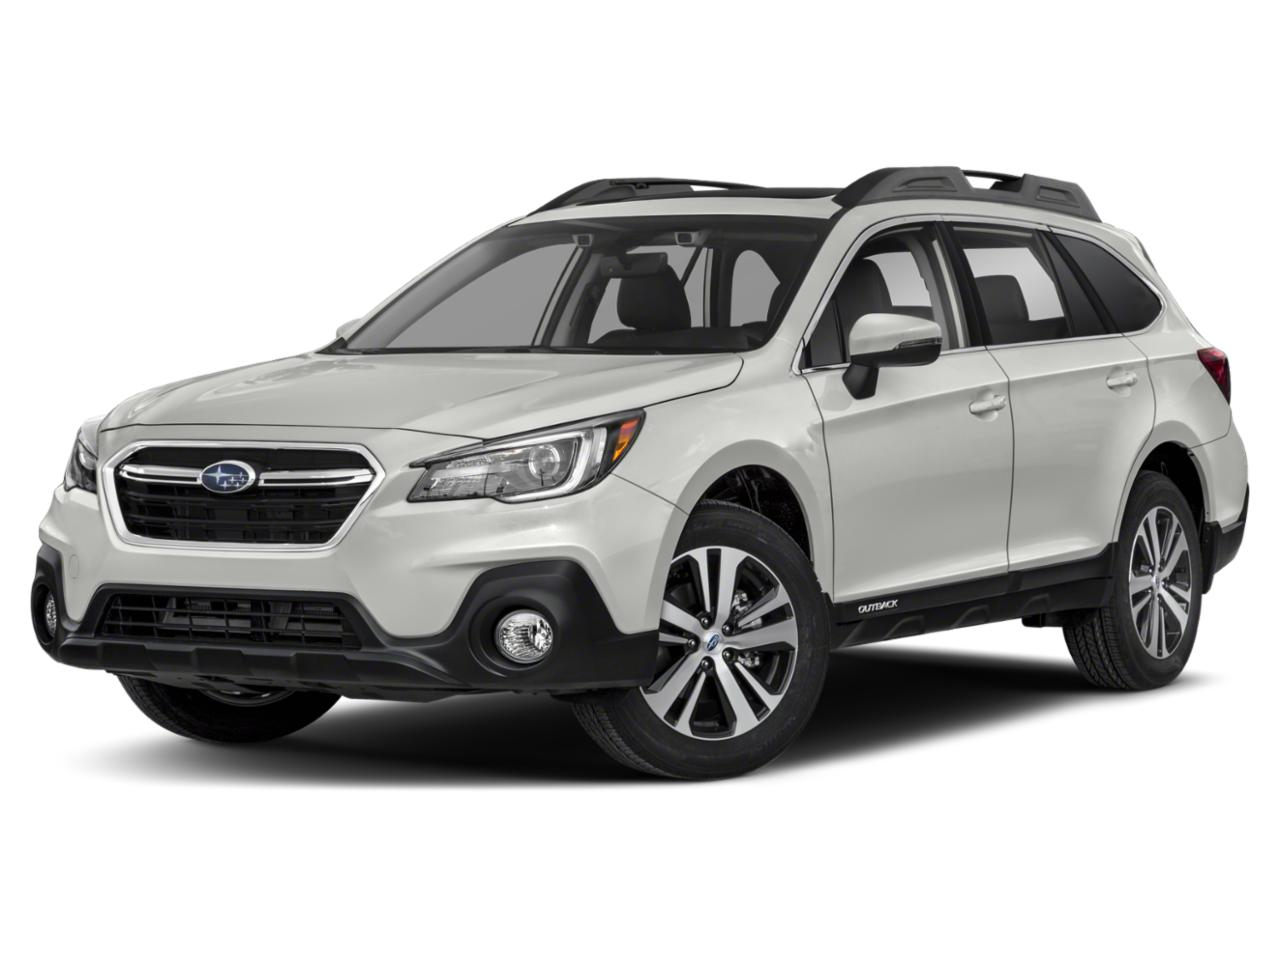 2018 Subaru Outback Vehicle Photo in Prince Frederick, MD 20678